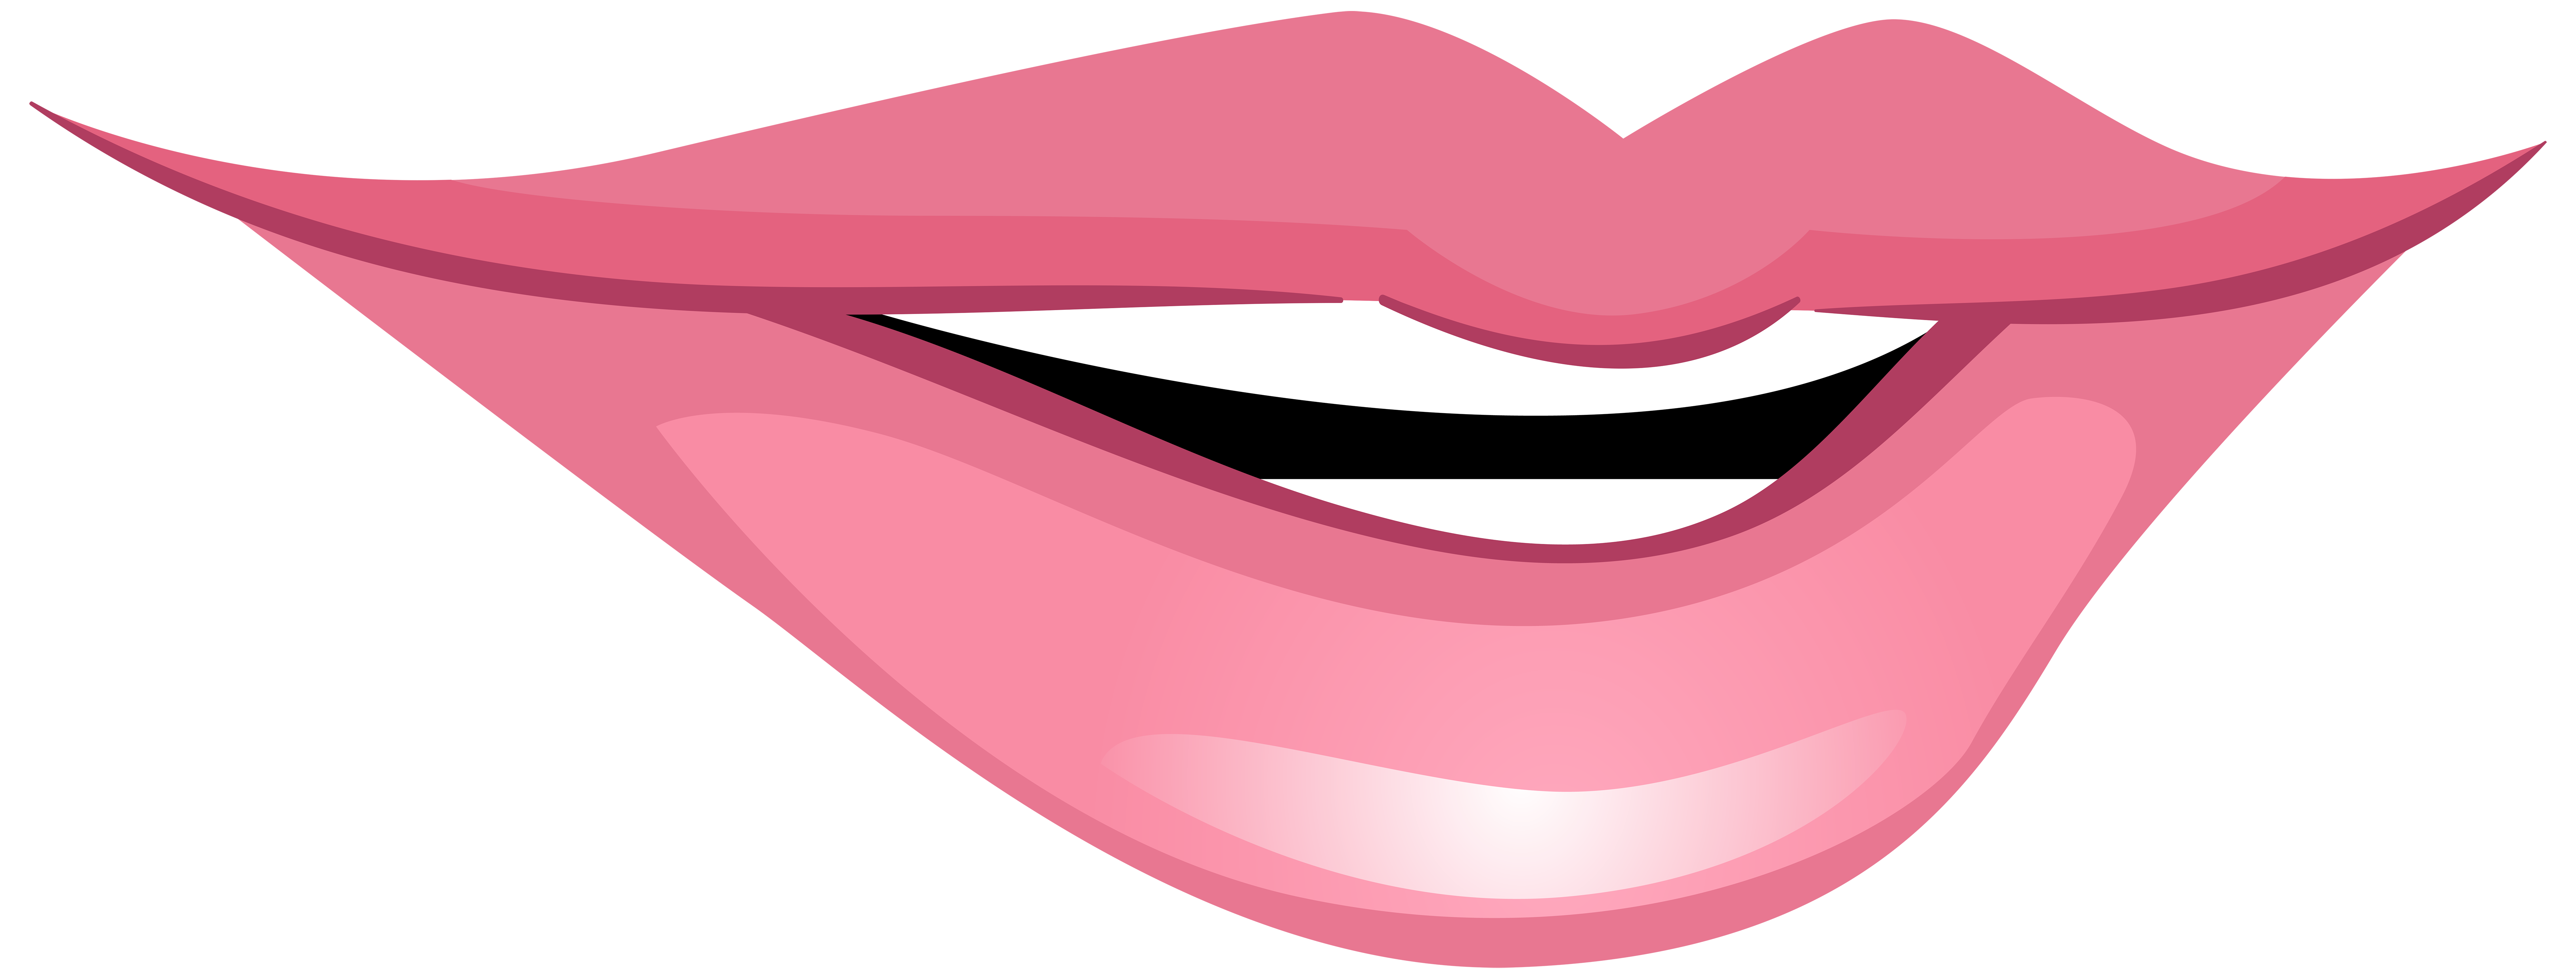 Fish with hook in mouth clipart clipart transparent download Pink Smiling Mouth PNG Clip Art - Best WEB Clipart clipart transparent download